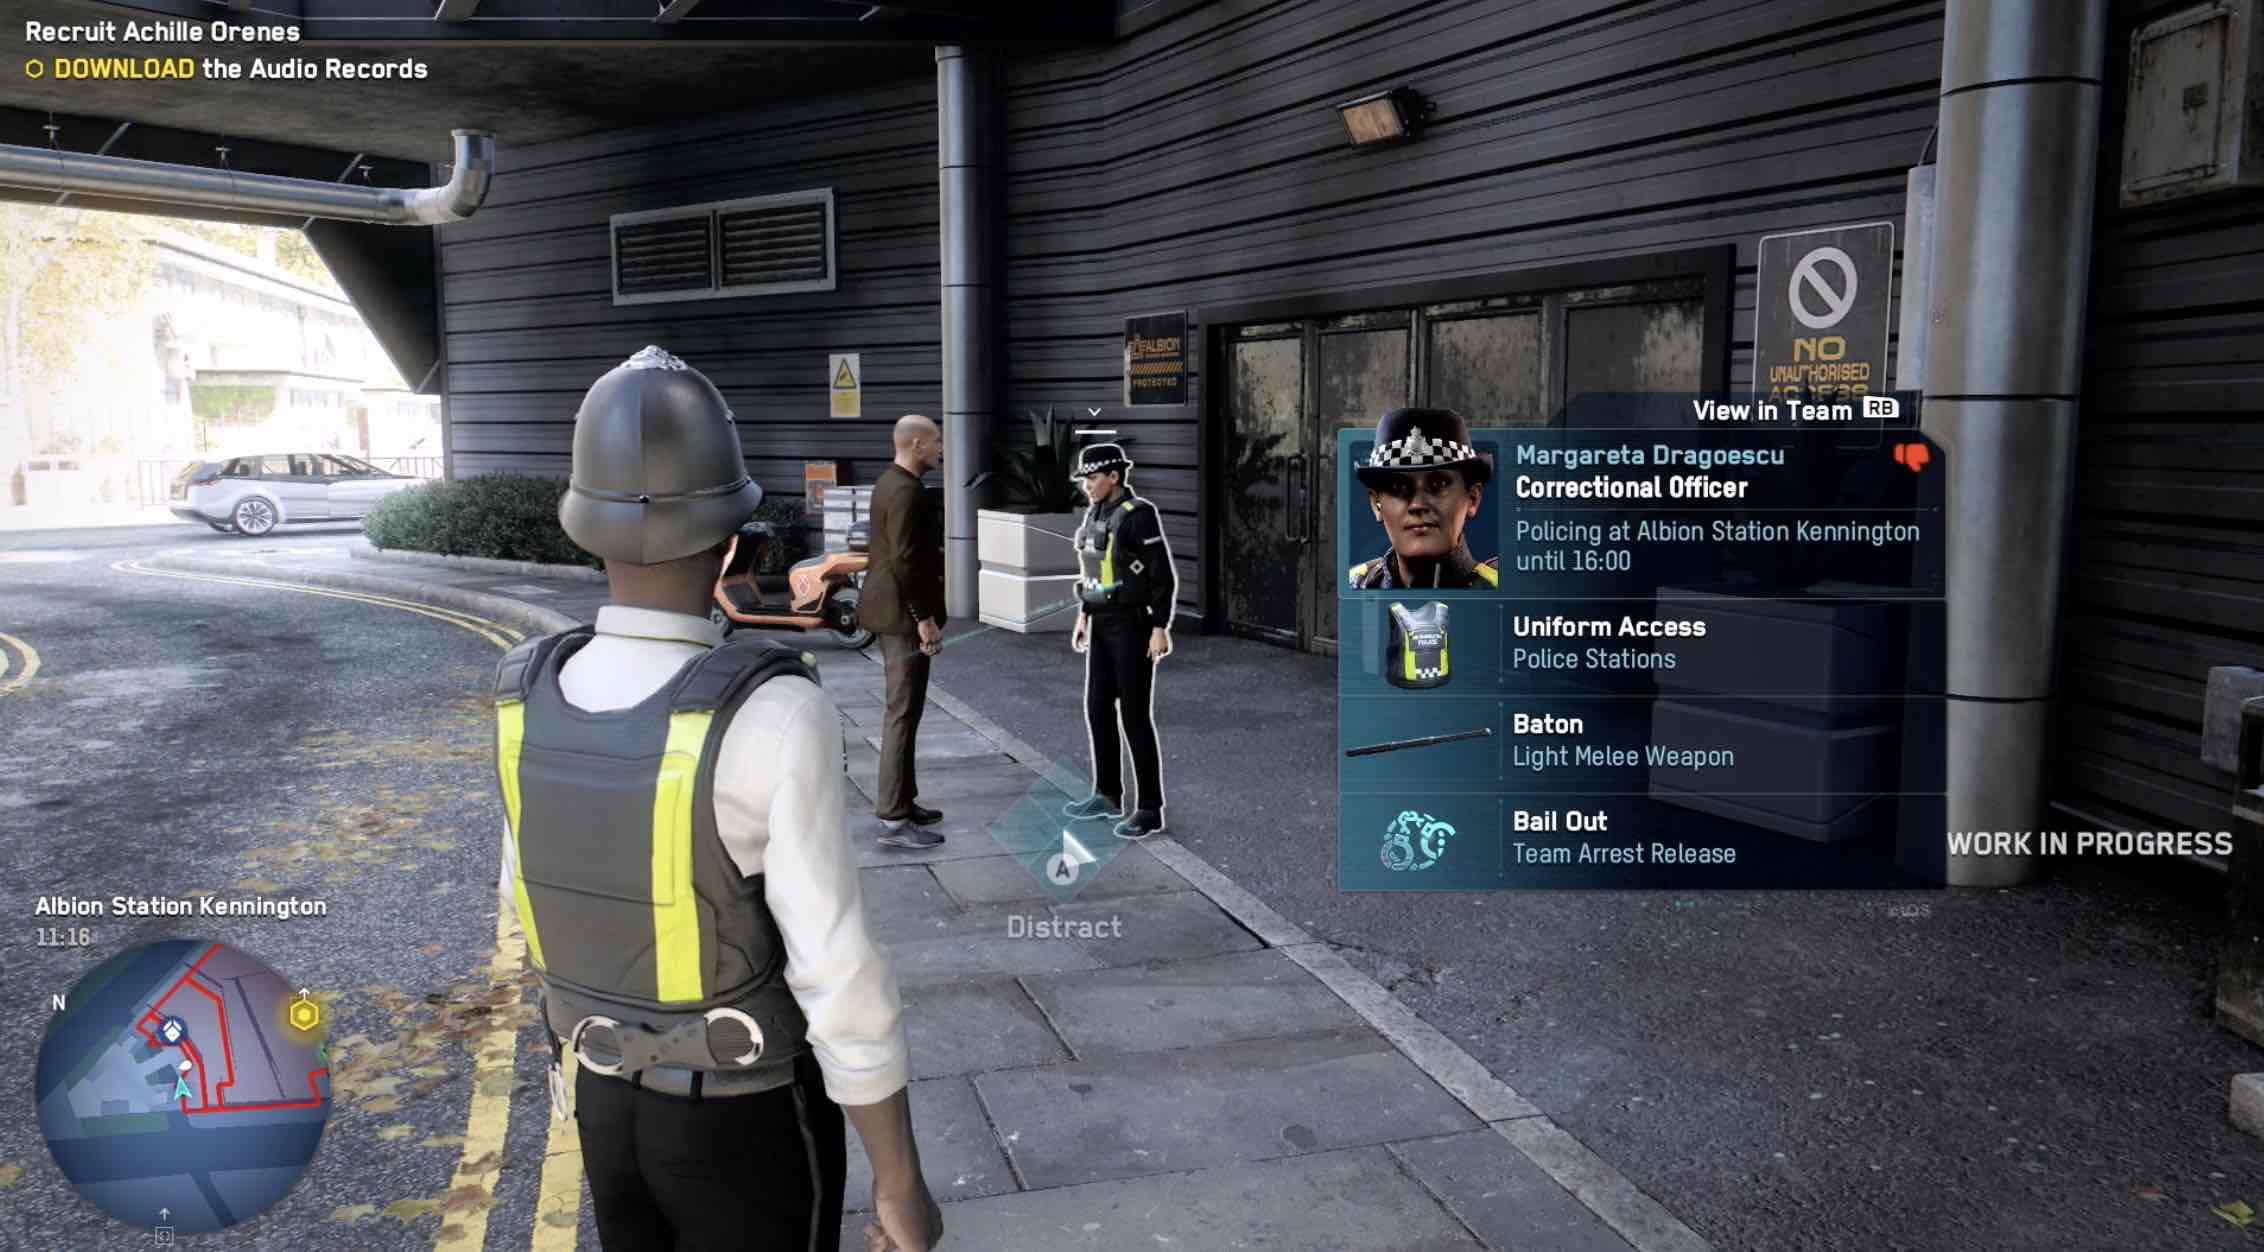 Watch Dogs Legion images have been leaked